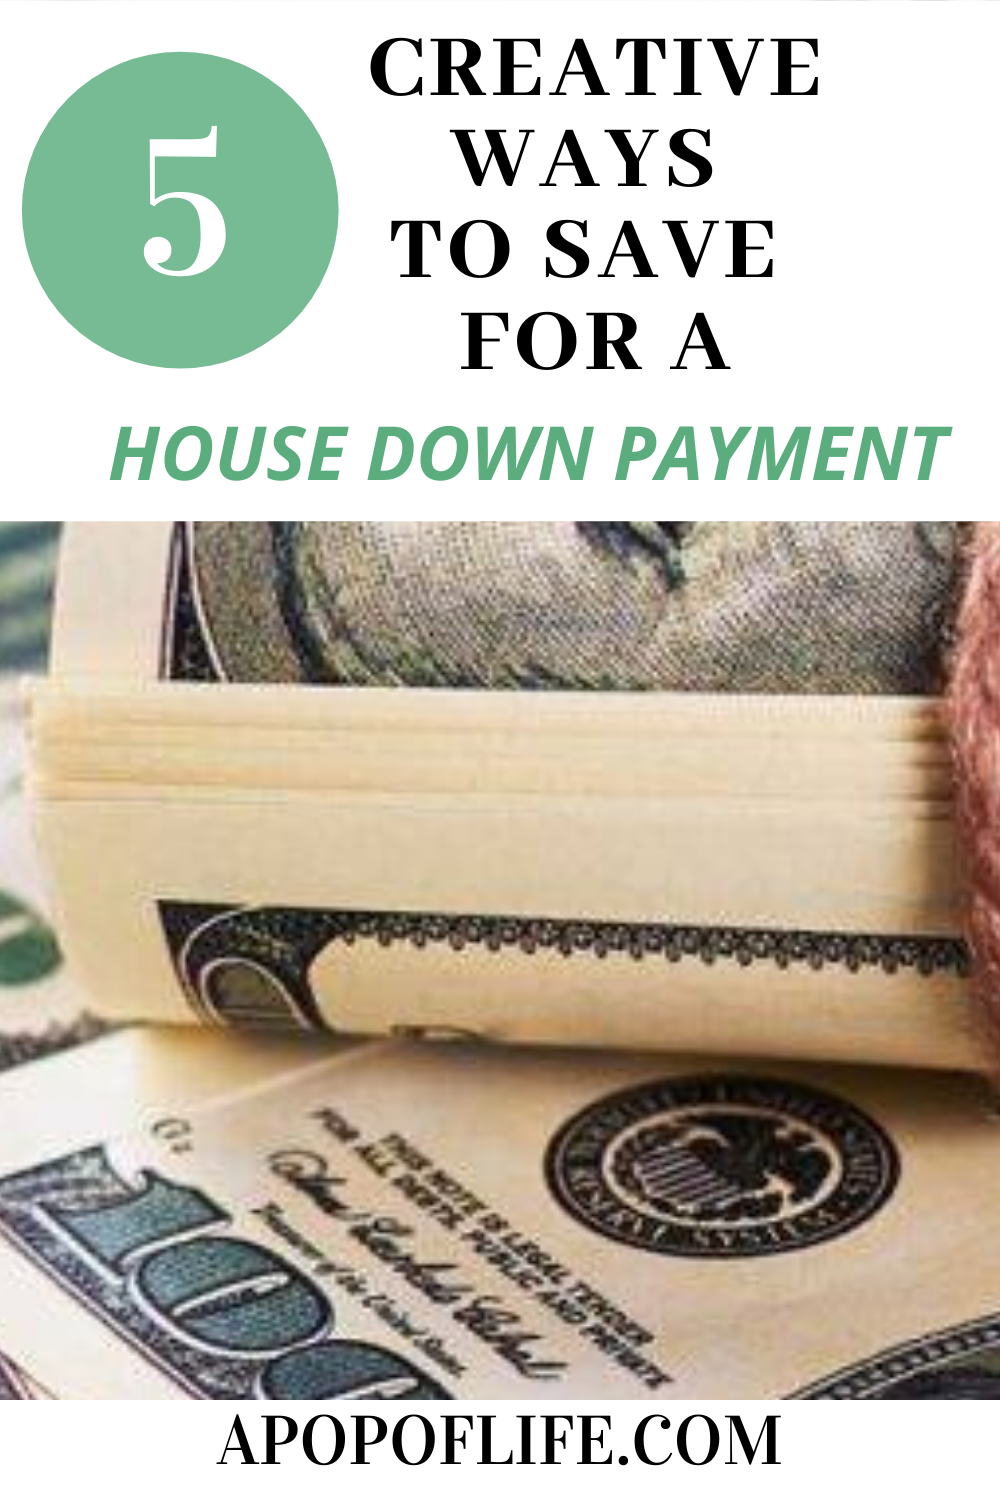 save money tips, save money challenge, save money for a house, save for house down payment, down payment savings plan, down payment house, house purchase first time, how to save money fast, how to save for a house, savings plan for house